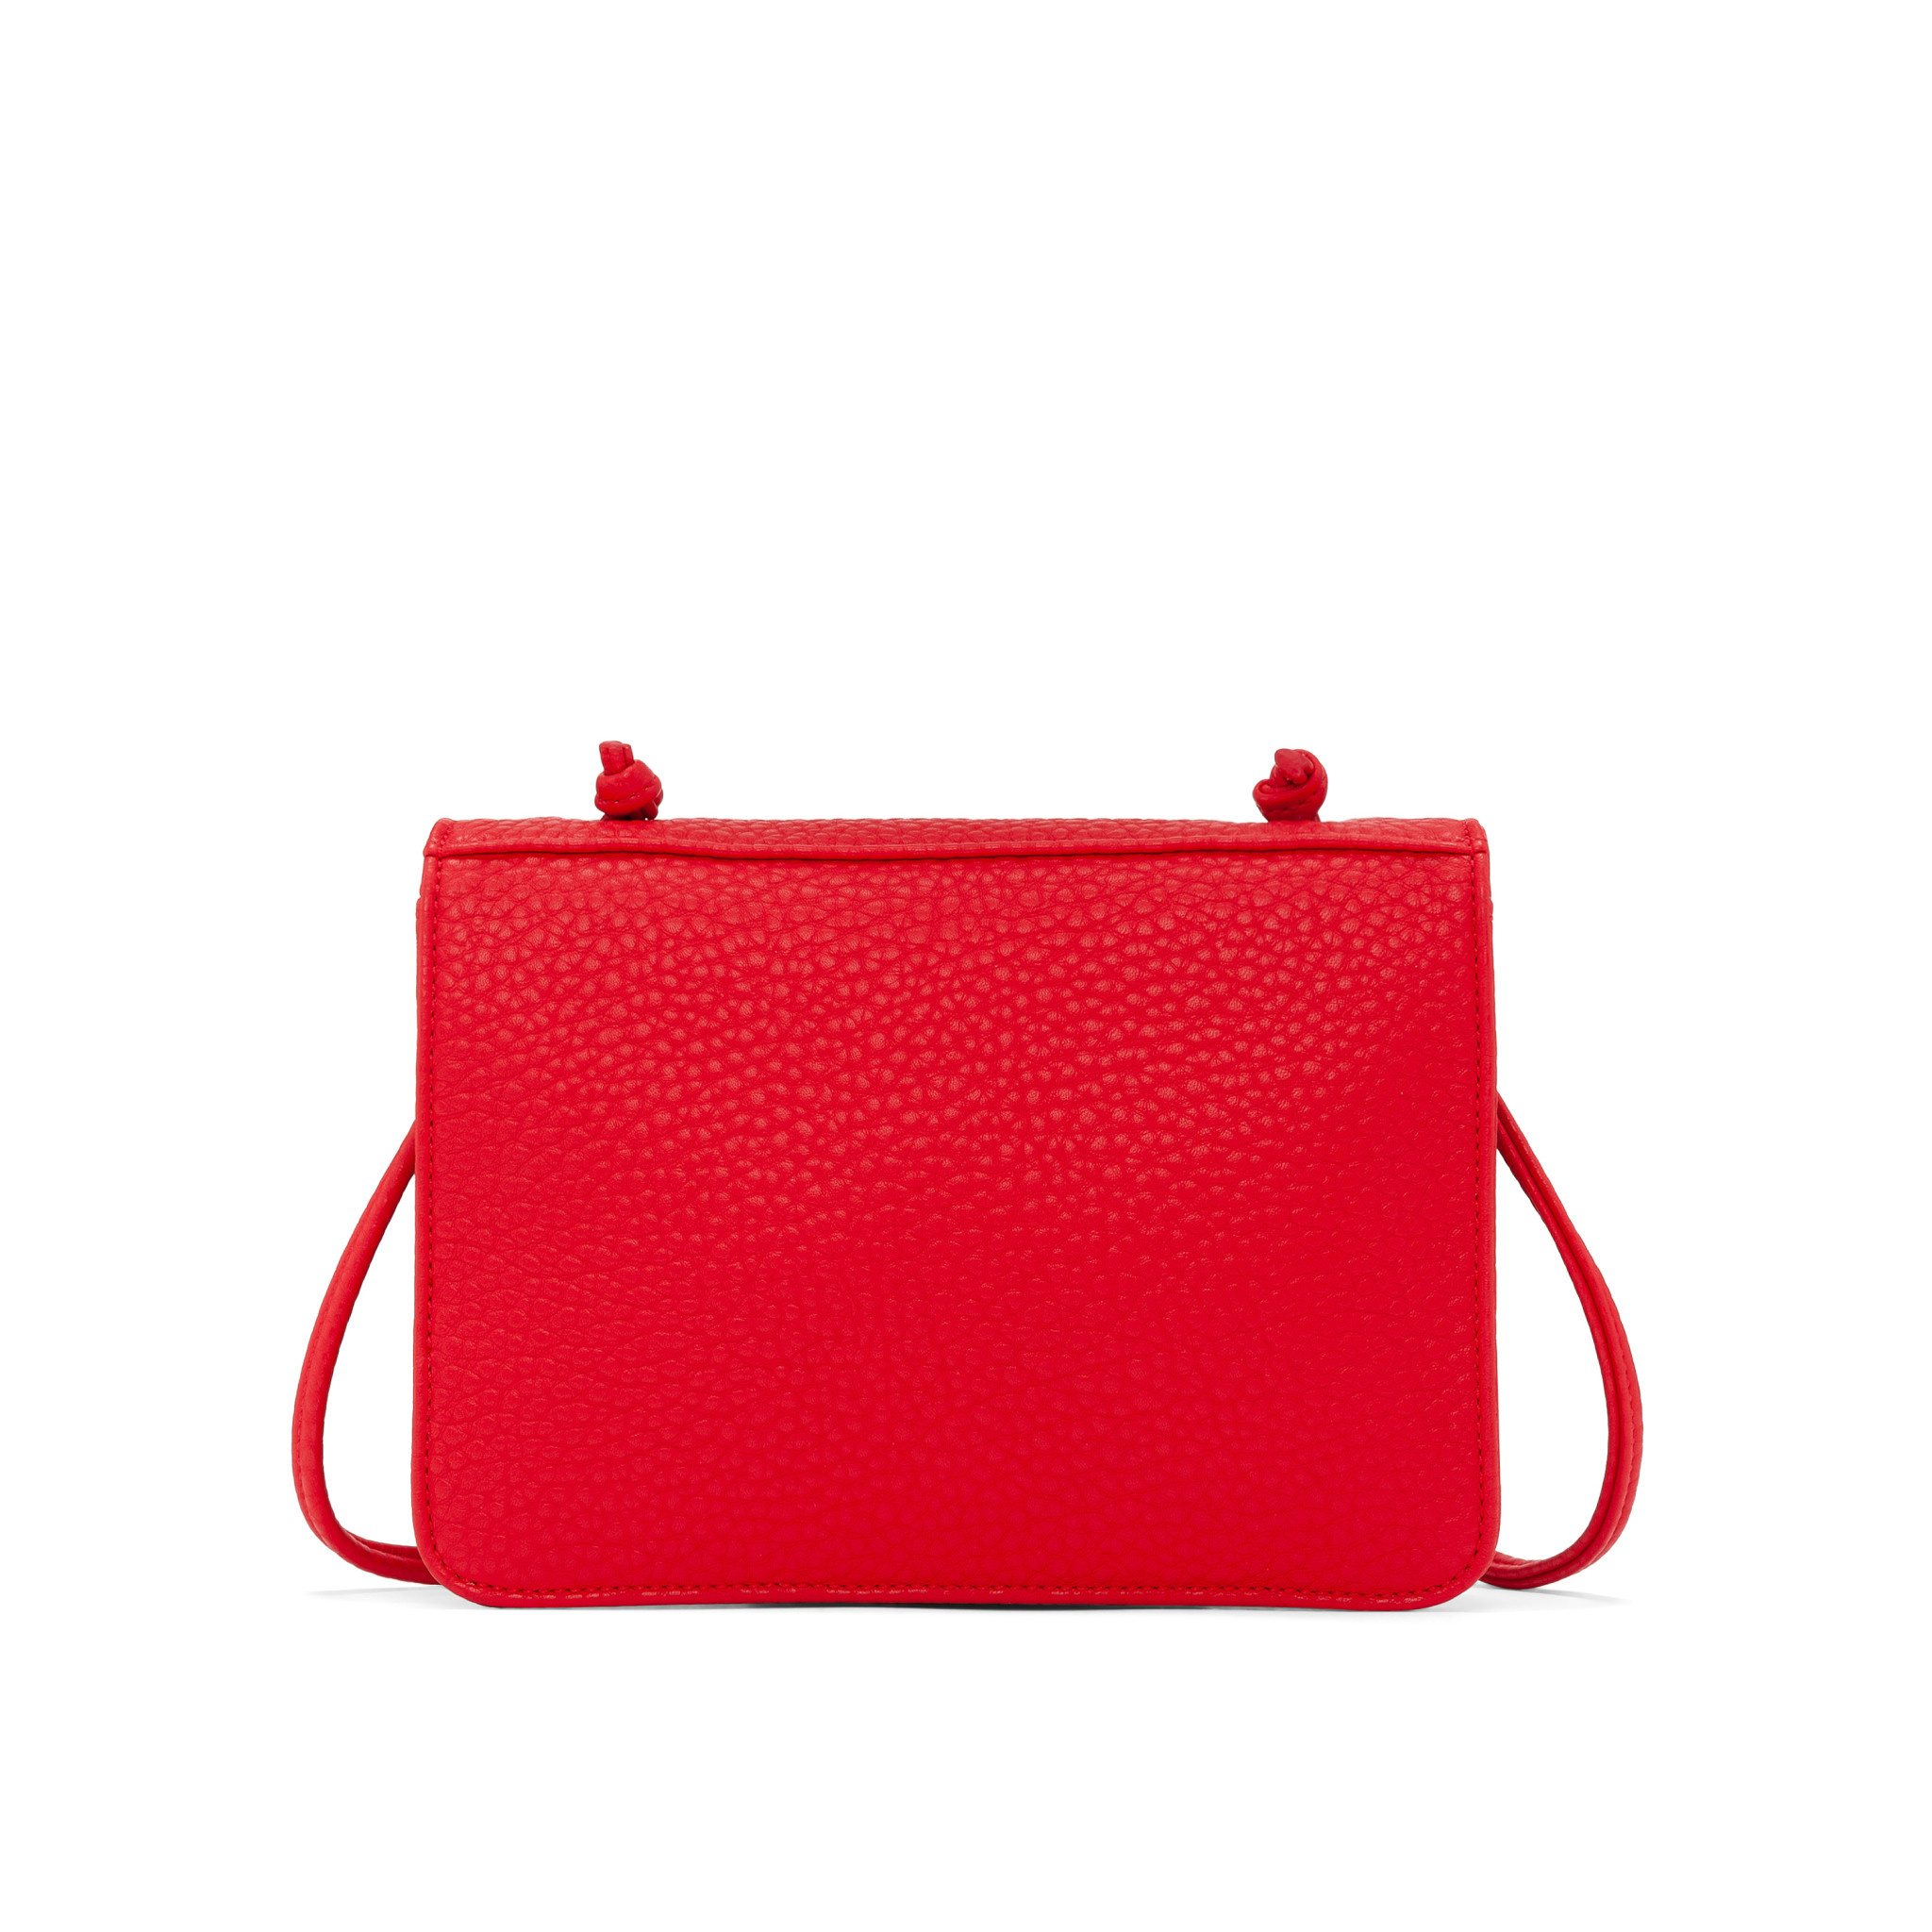 Colab Colab Pebble P.U. Smalls Crossbody Caryall (#6043) - Candy Apple